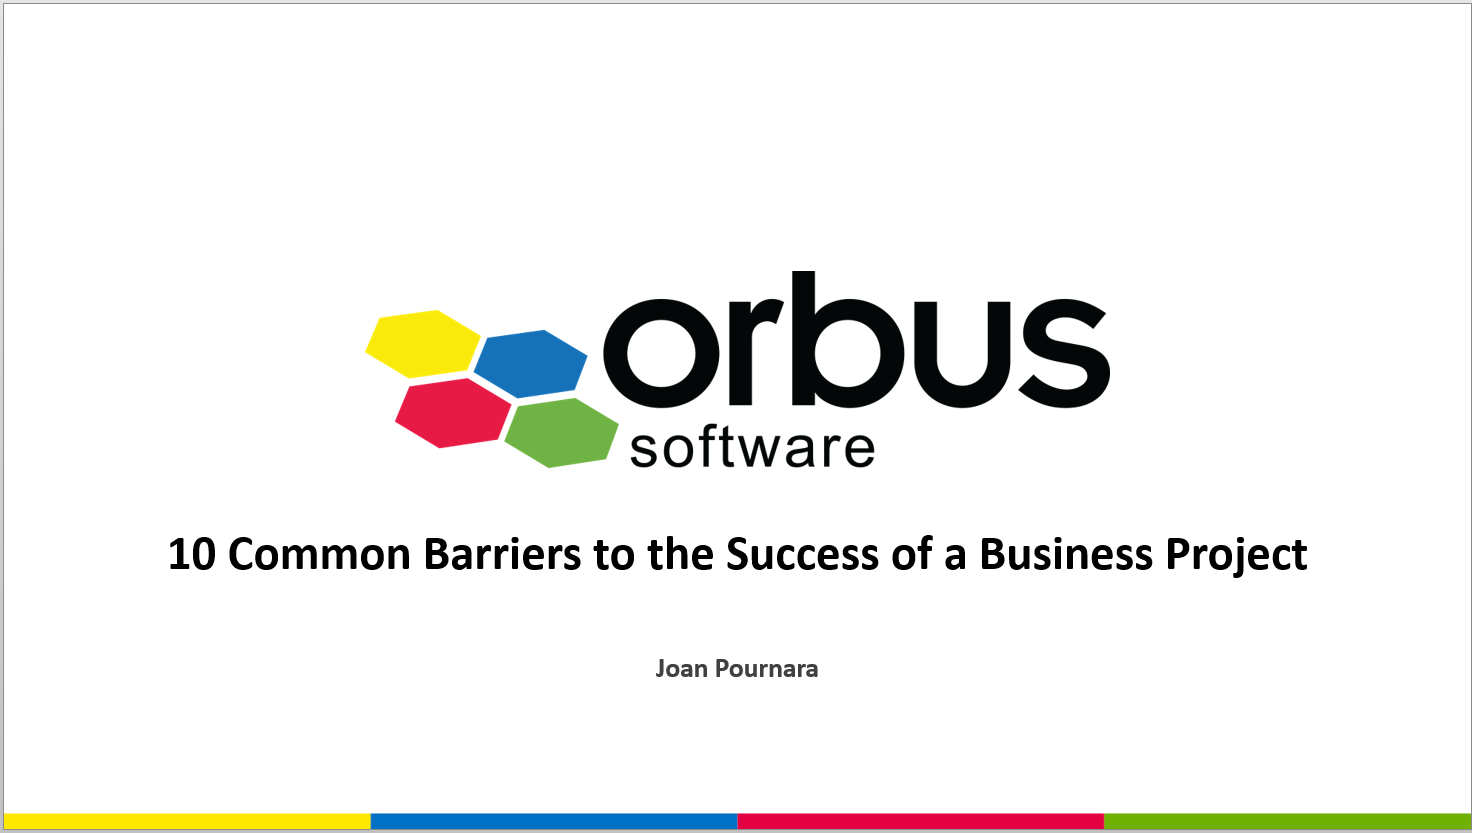 10 Common Barriers to the Success of a Business Project